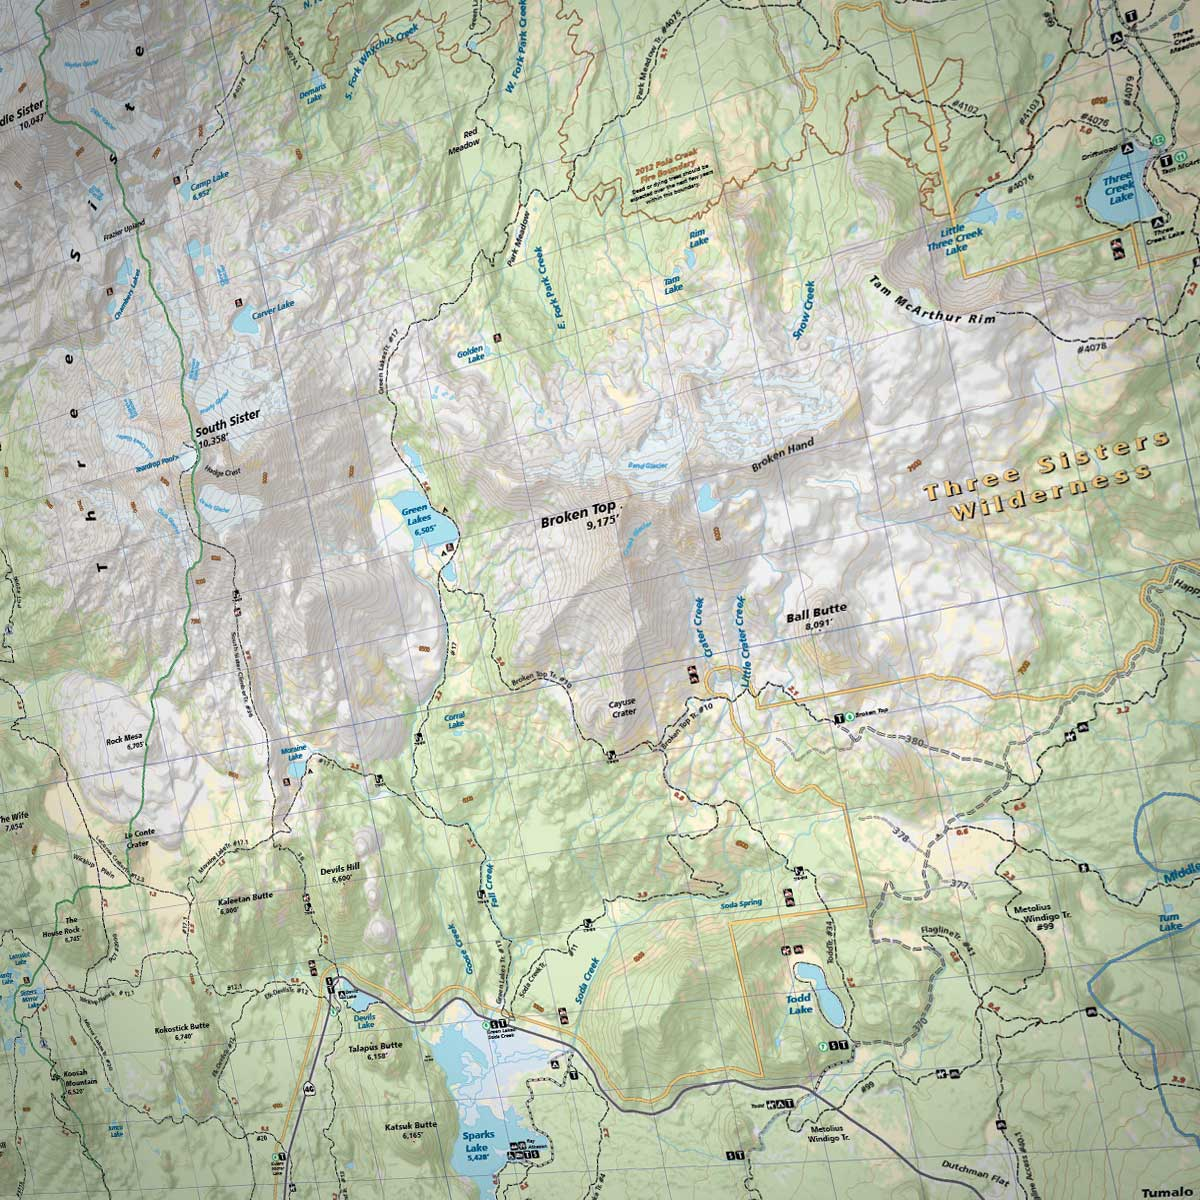 Three Sisters Wilderness Adventure Map on mt. lassen on us map, obsidian trail map, bend map, sisters mountains, three sisters map, visit orlando map, 3 sisters tx map, sisters ranger district map, bonanza ranch nevada map, sisters or, ida st stayton map,